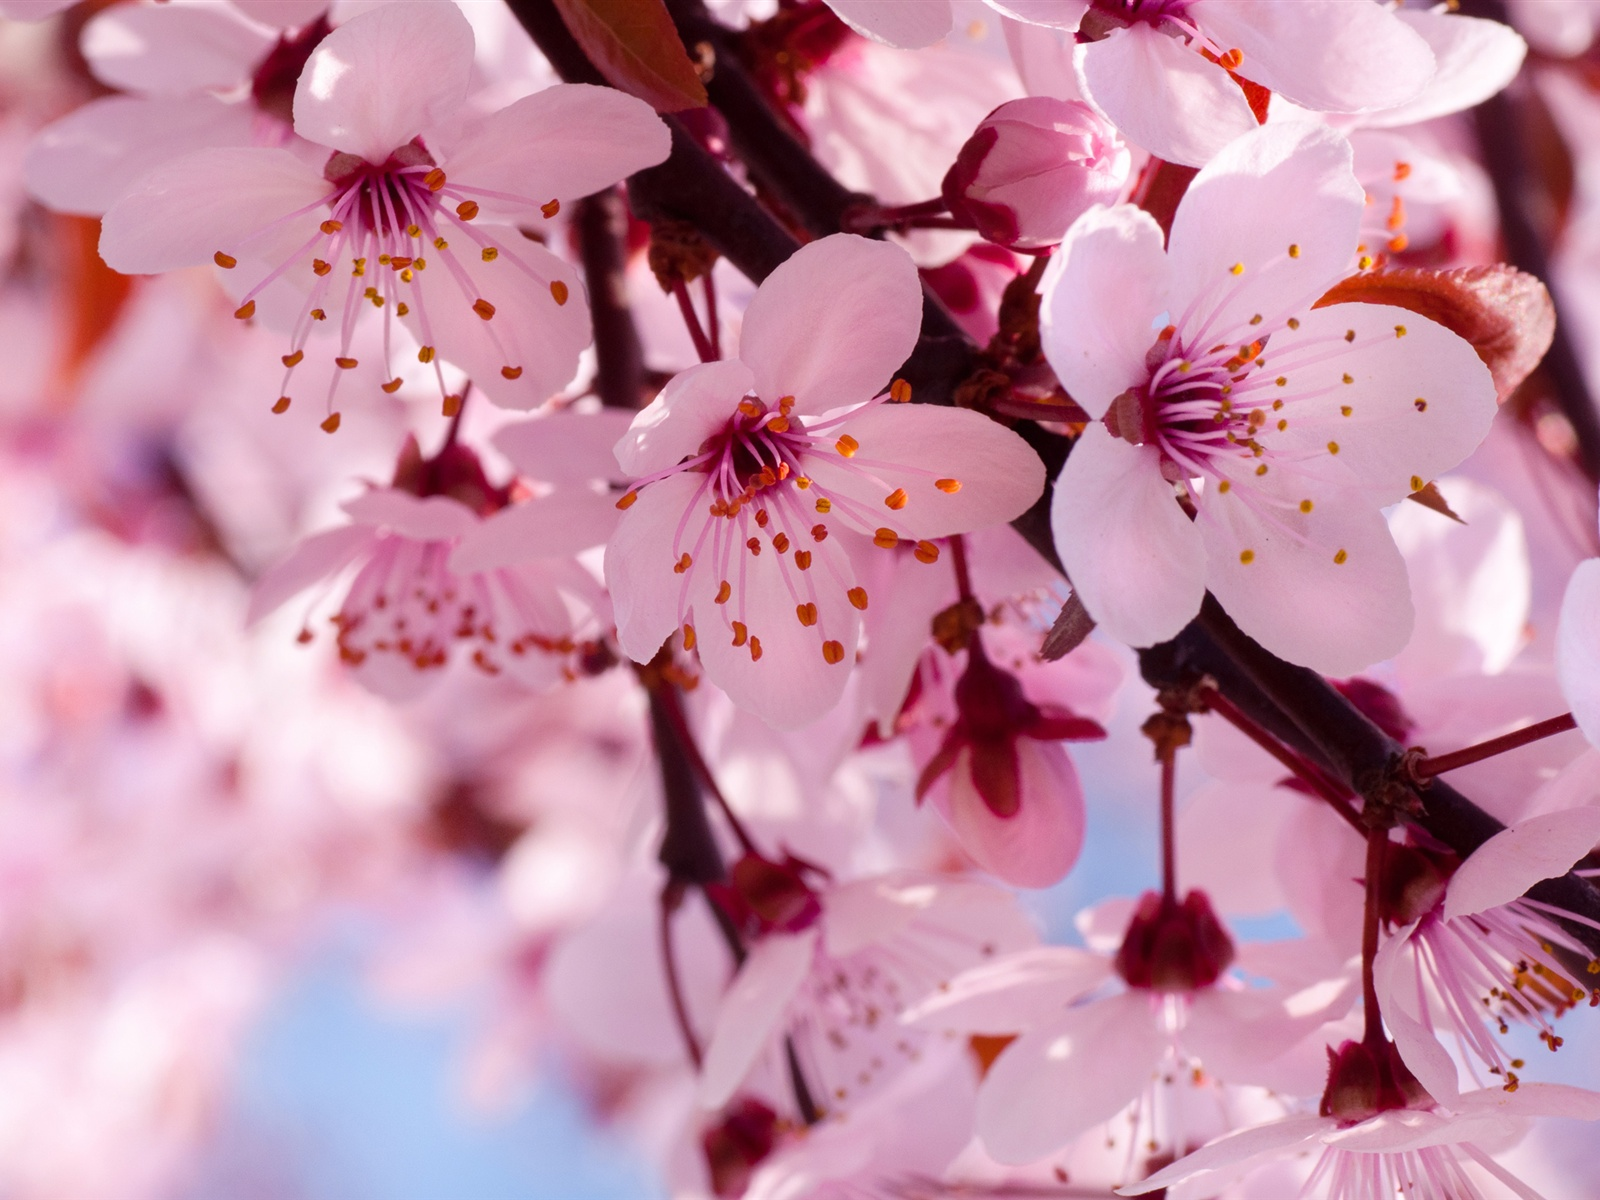 Cherry Blossom Images Beautiful HD Wallpaper And Background Photos